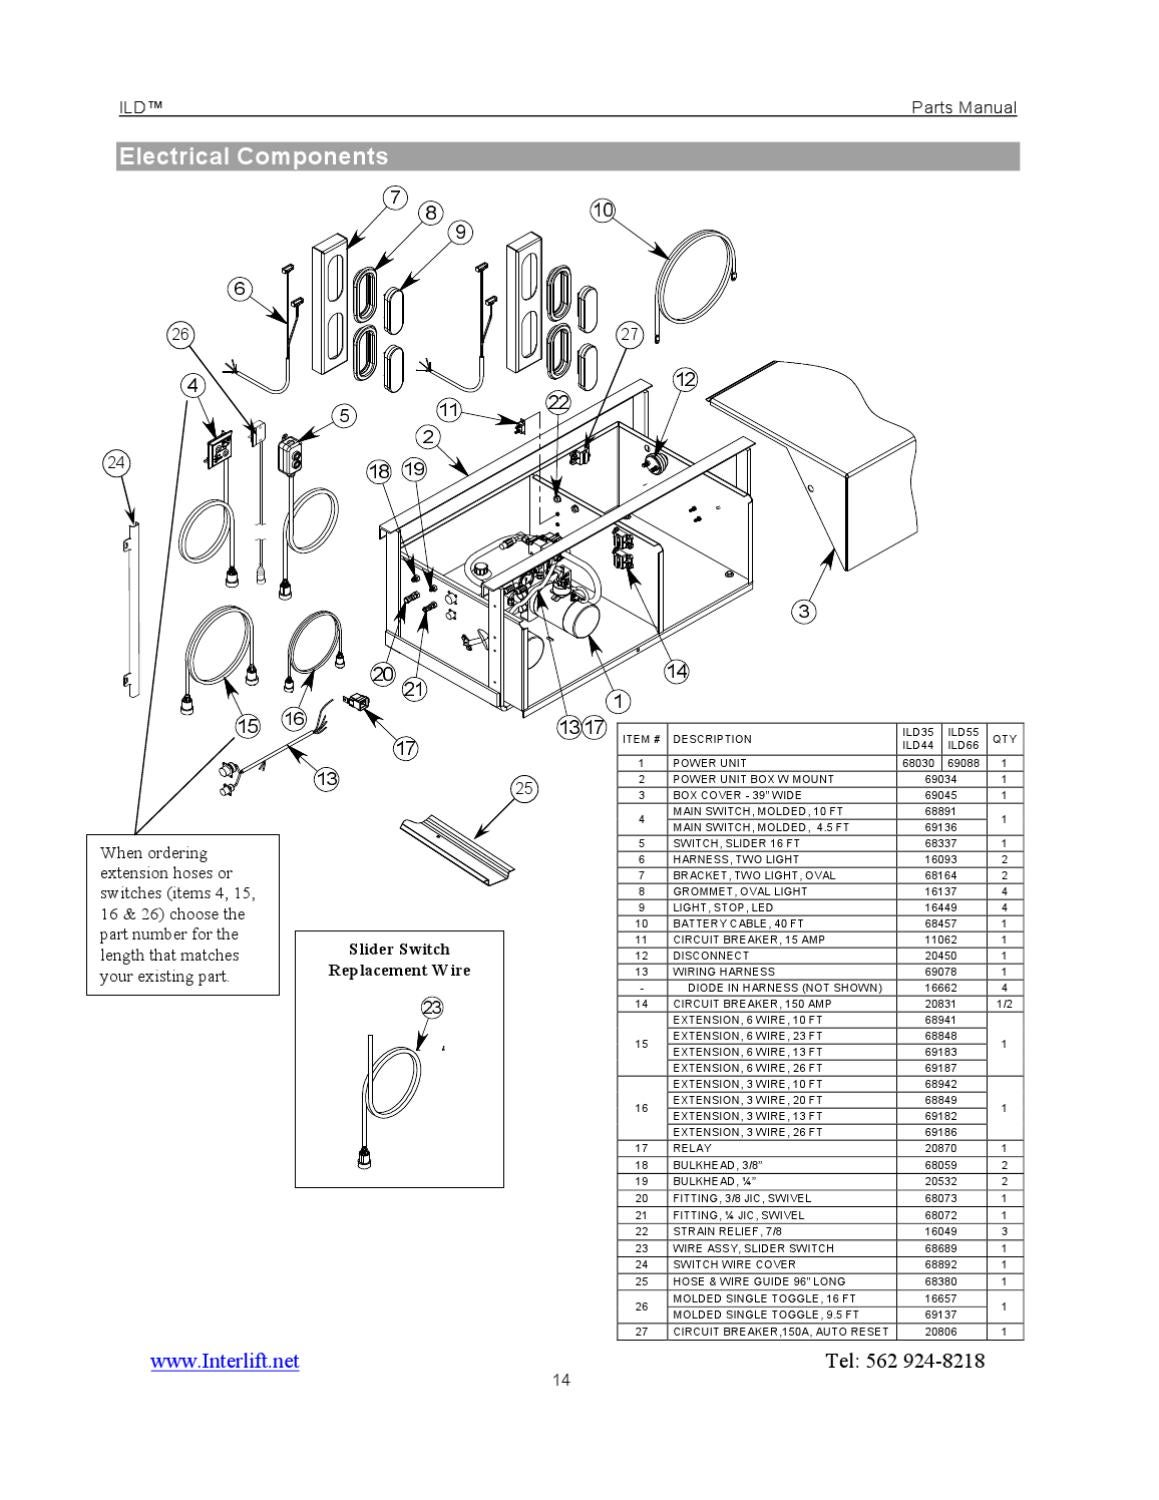 hight resolution of mbb interlift wiring diagram 28 wiring diagram images eagle lift wiring diagram mbb interlift wiring diagram for 83269925